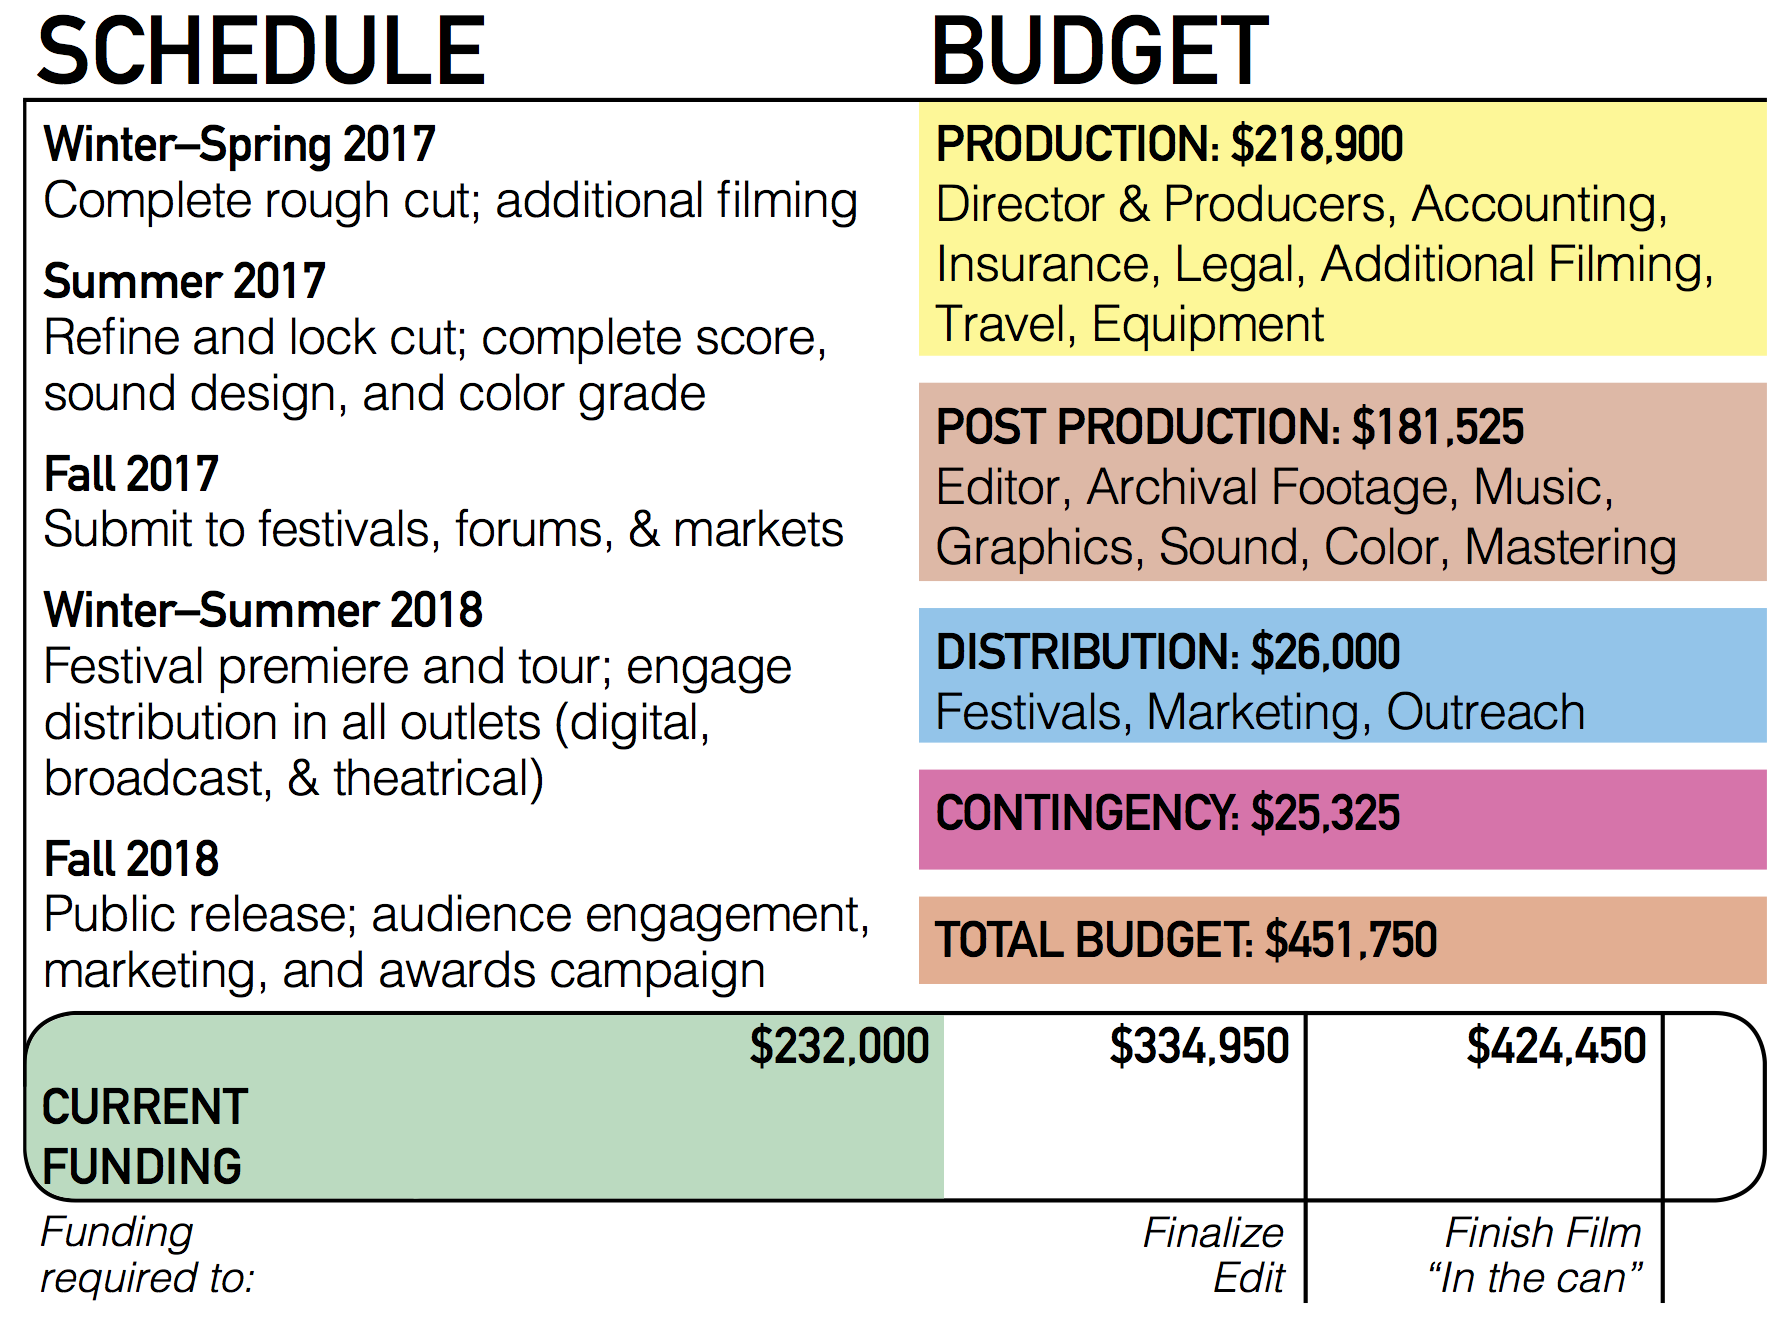 Budget Web Graphic Feb2017.png